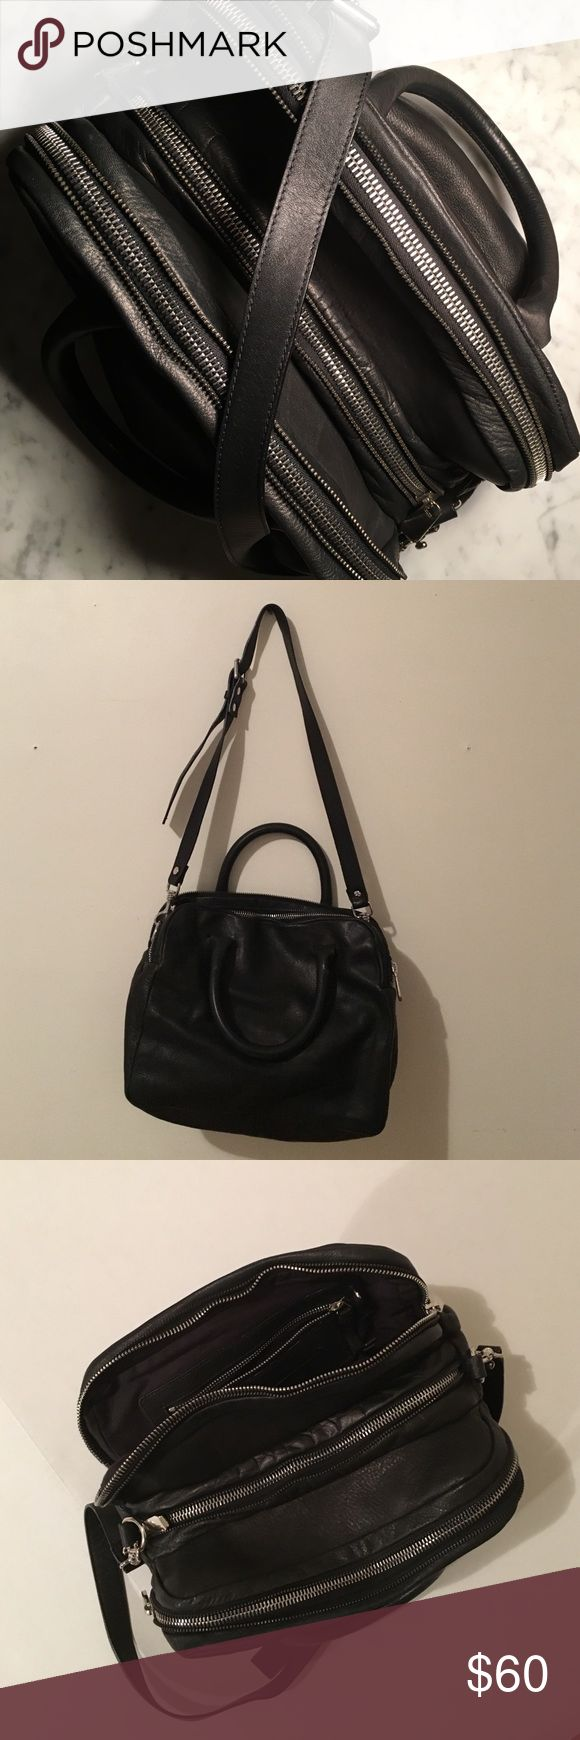 & Other Stories - Real Leather Bag This bag has 3 big pockets, all individual zippers. Attachable shoulder strap. Black with silver detail. Only used a couple of times. The leather is super soft. Perfect everyday bag! & Other Stories  Bags Totes